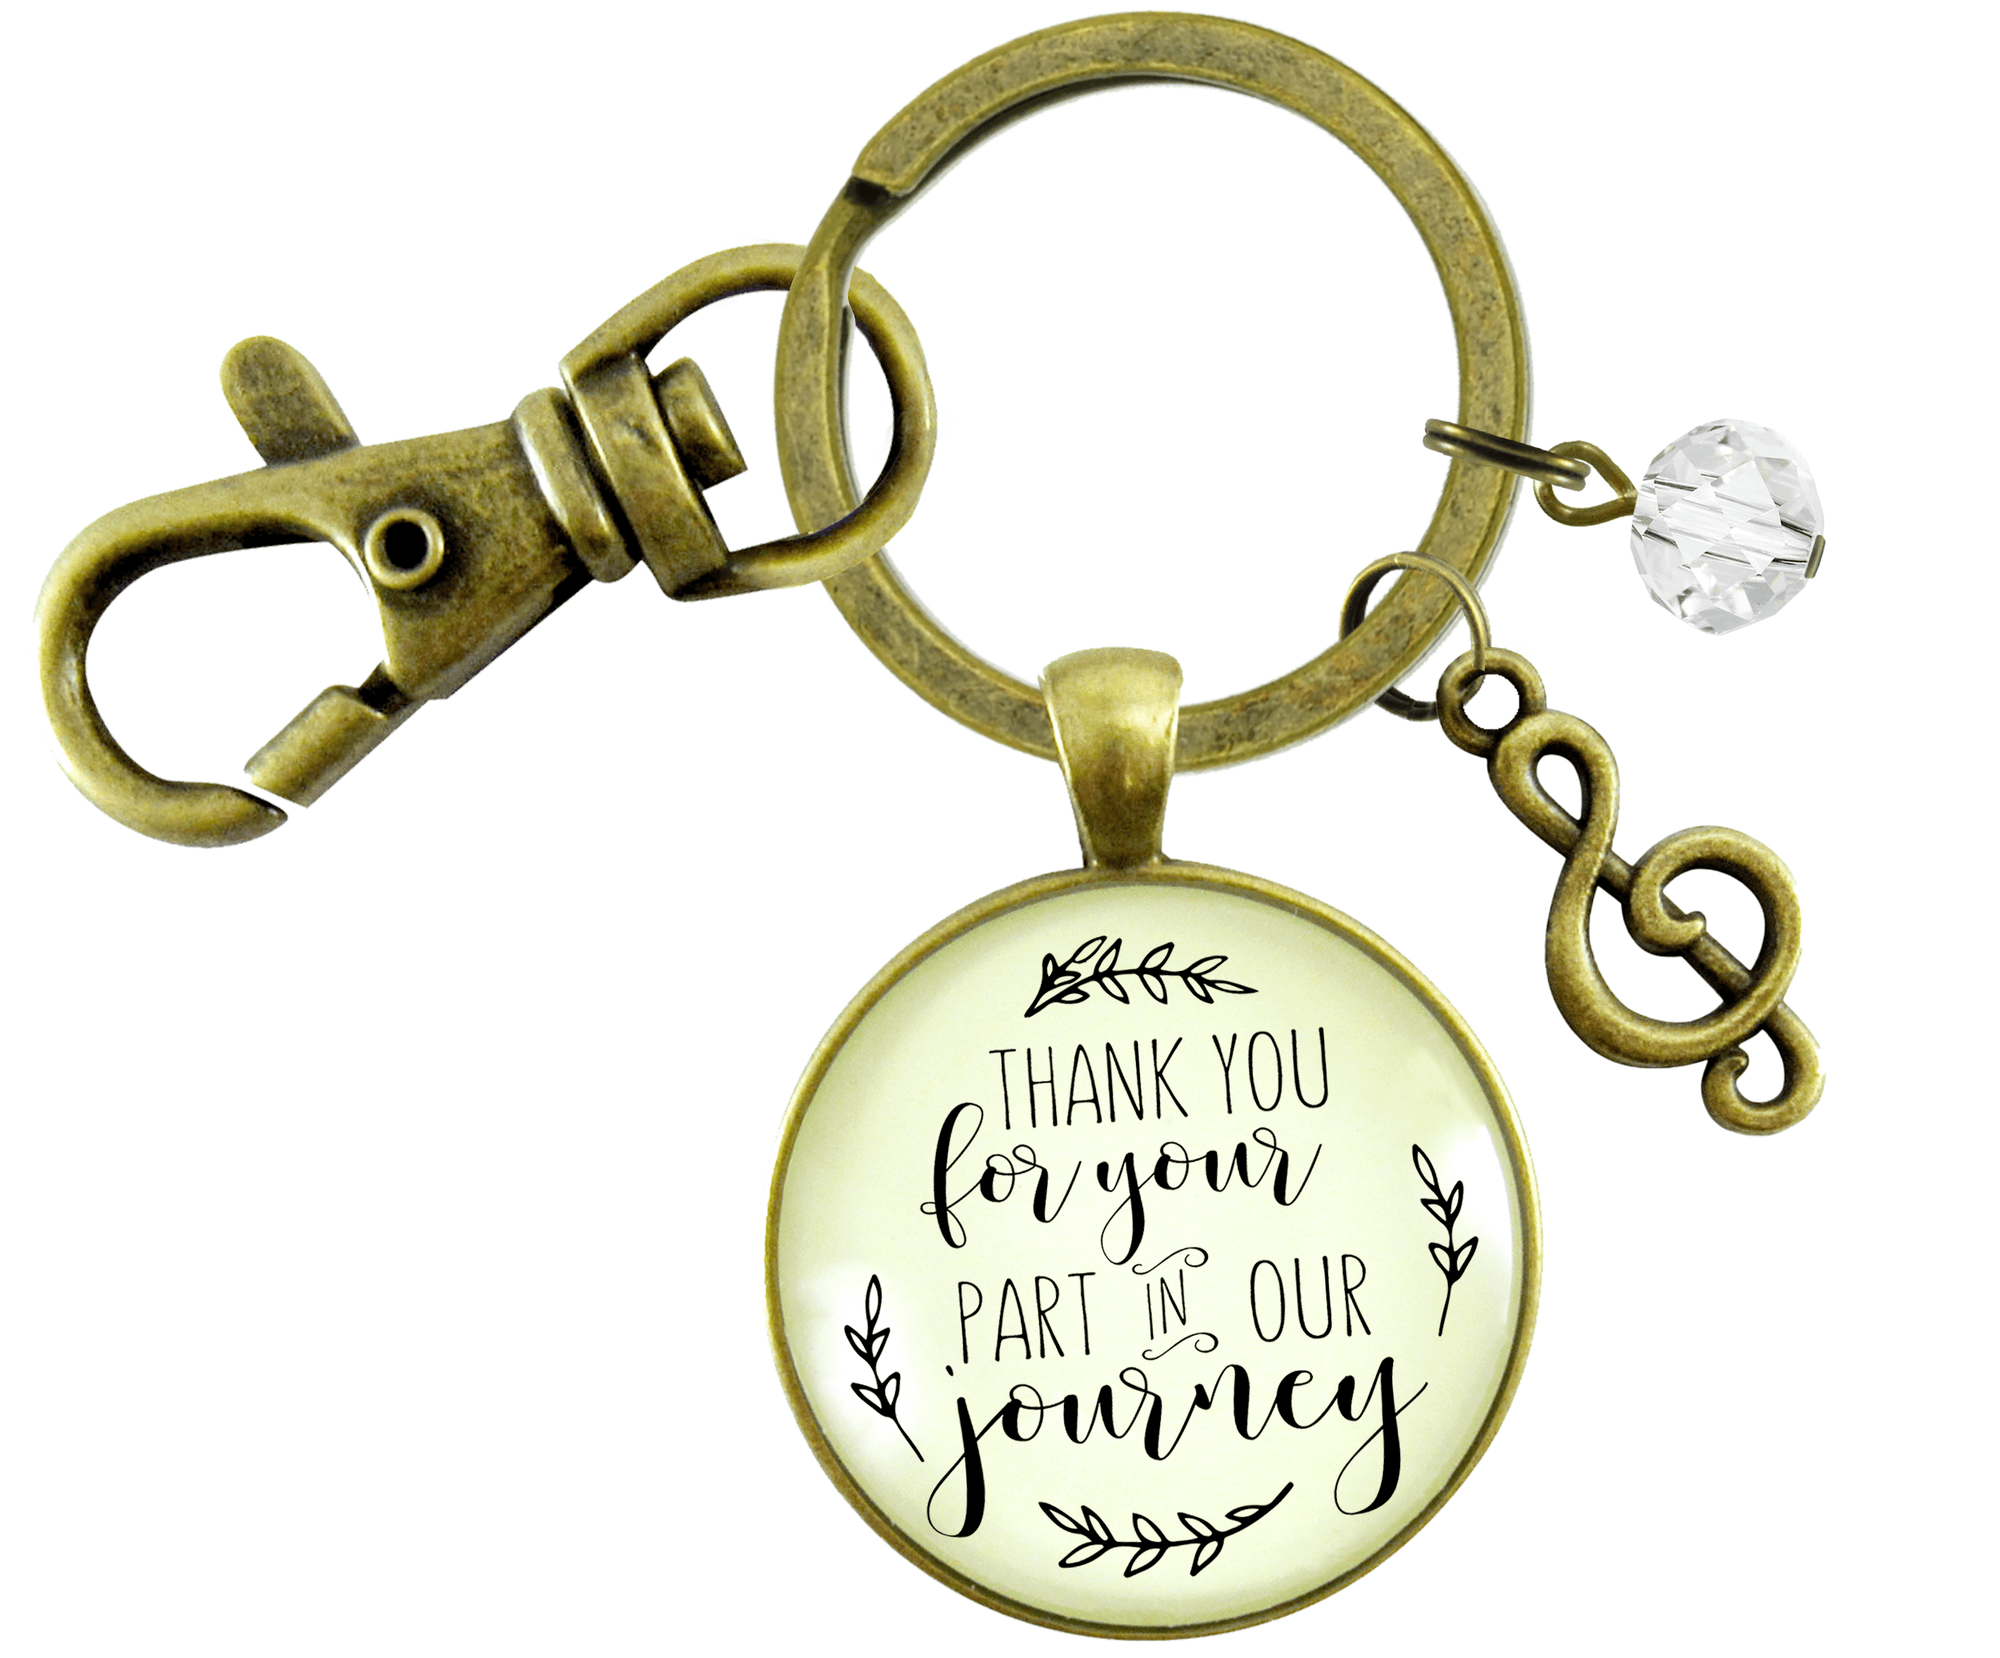 Wedding Singer Gift Keychain Thank You For Your Part Rustic For Musician Soloist G Clef - Gutsy Goodness